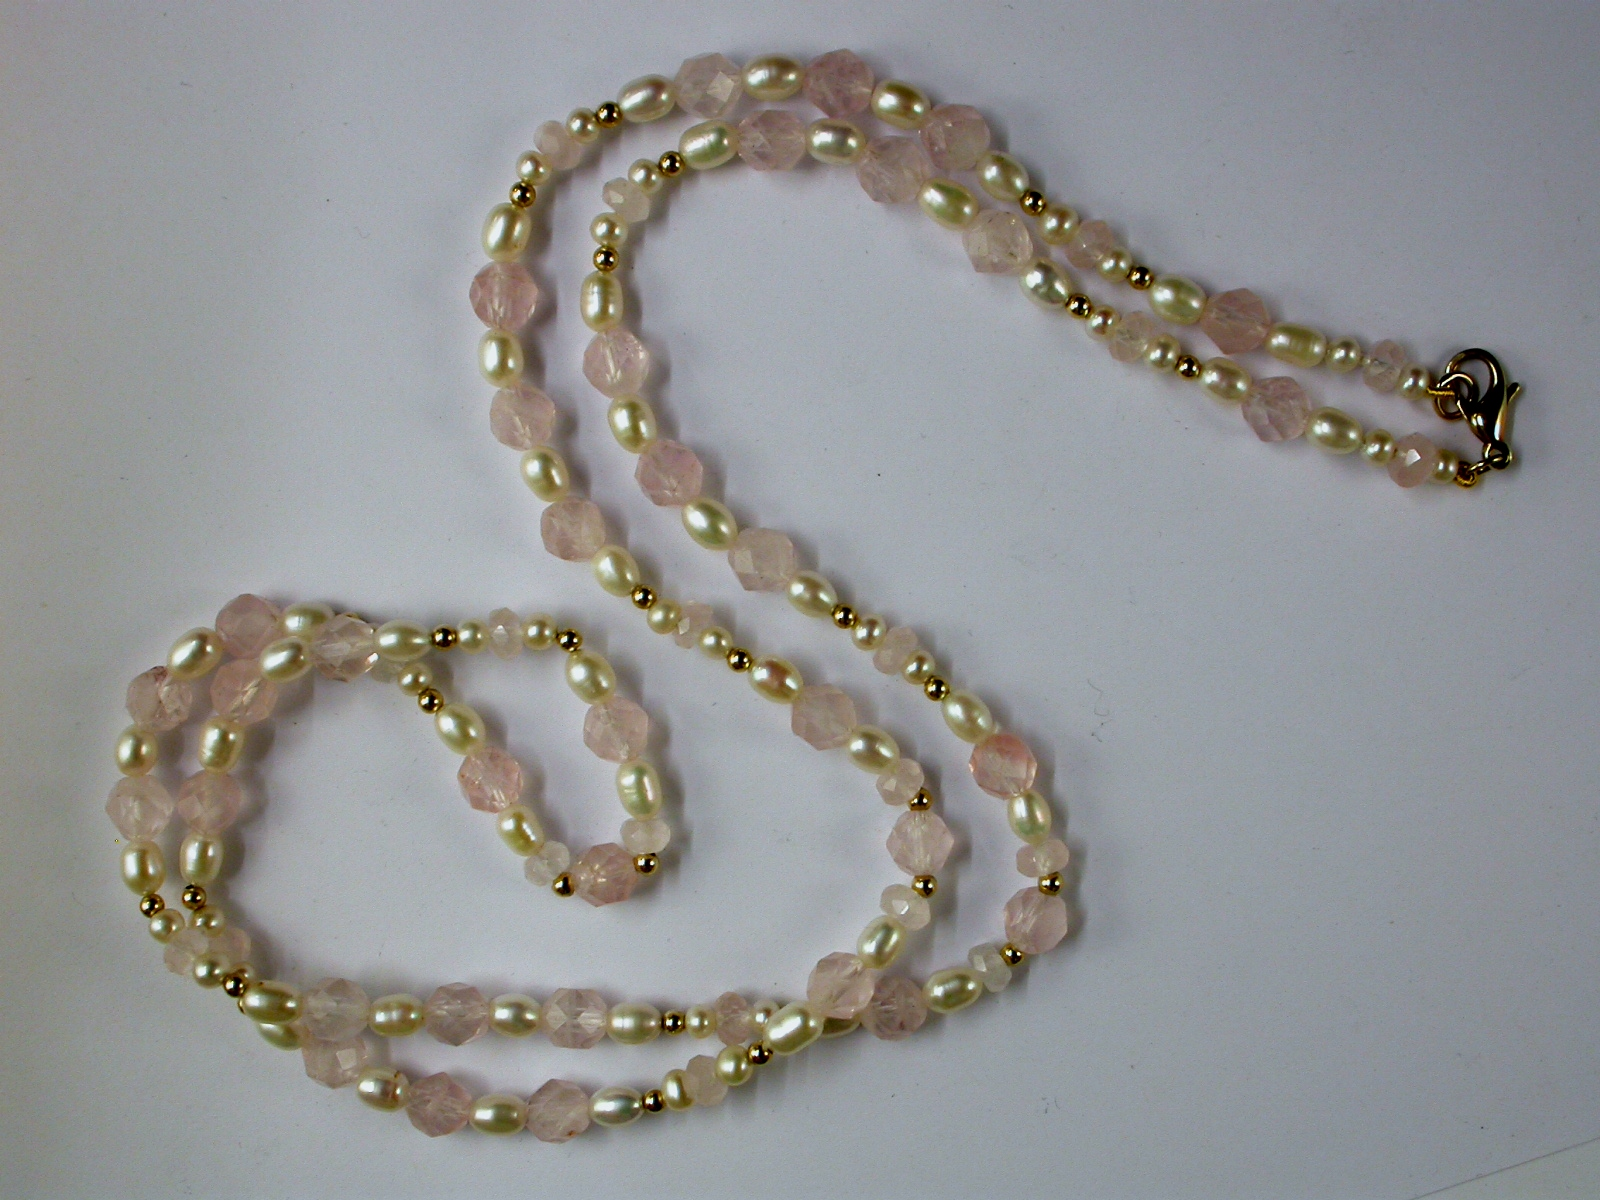 68029 - Rose Quartz & Cultured Pearl strung in an Opera length necklace with gold highlights